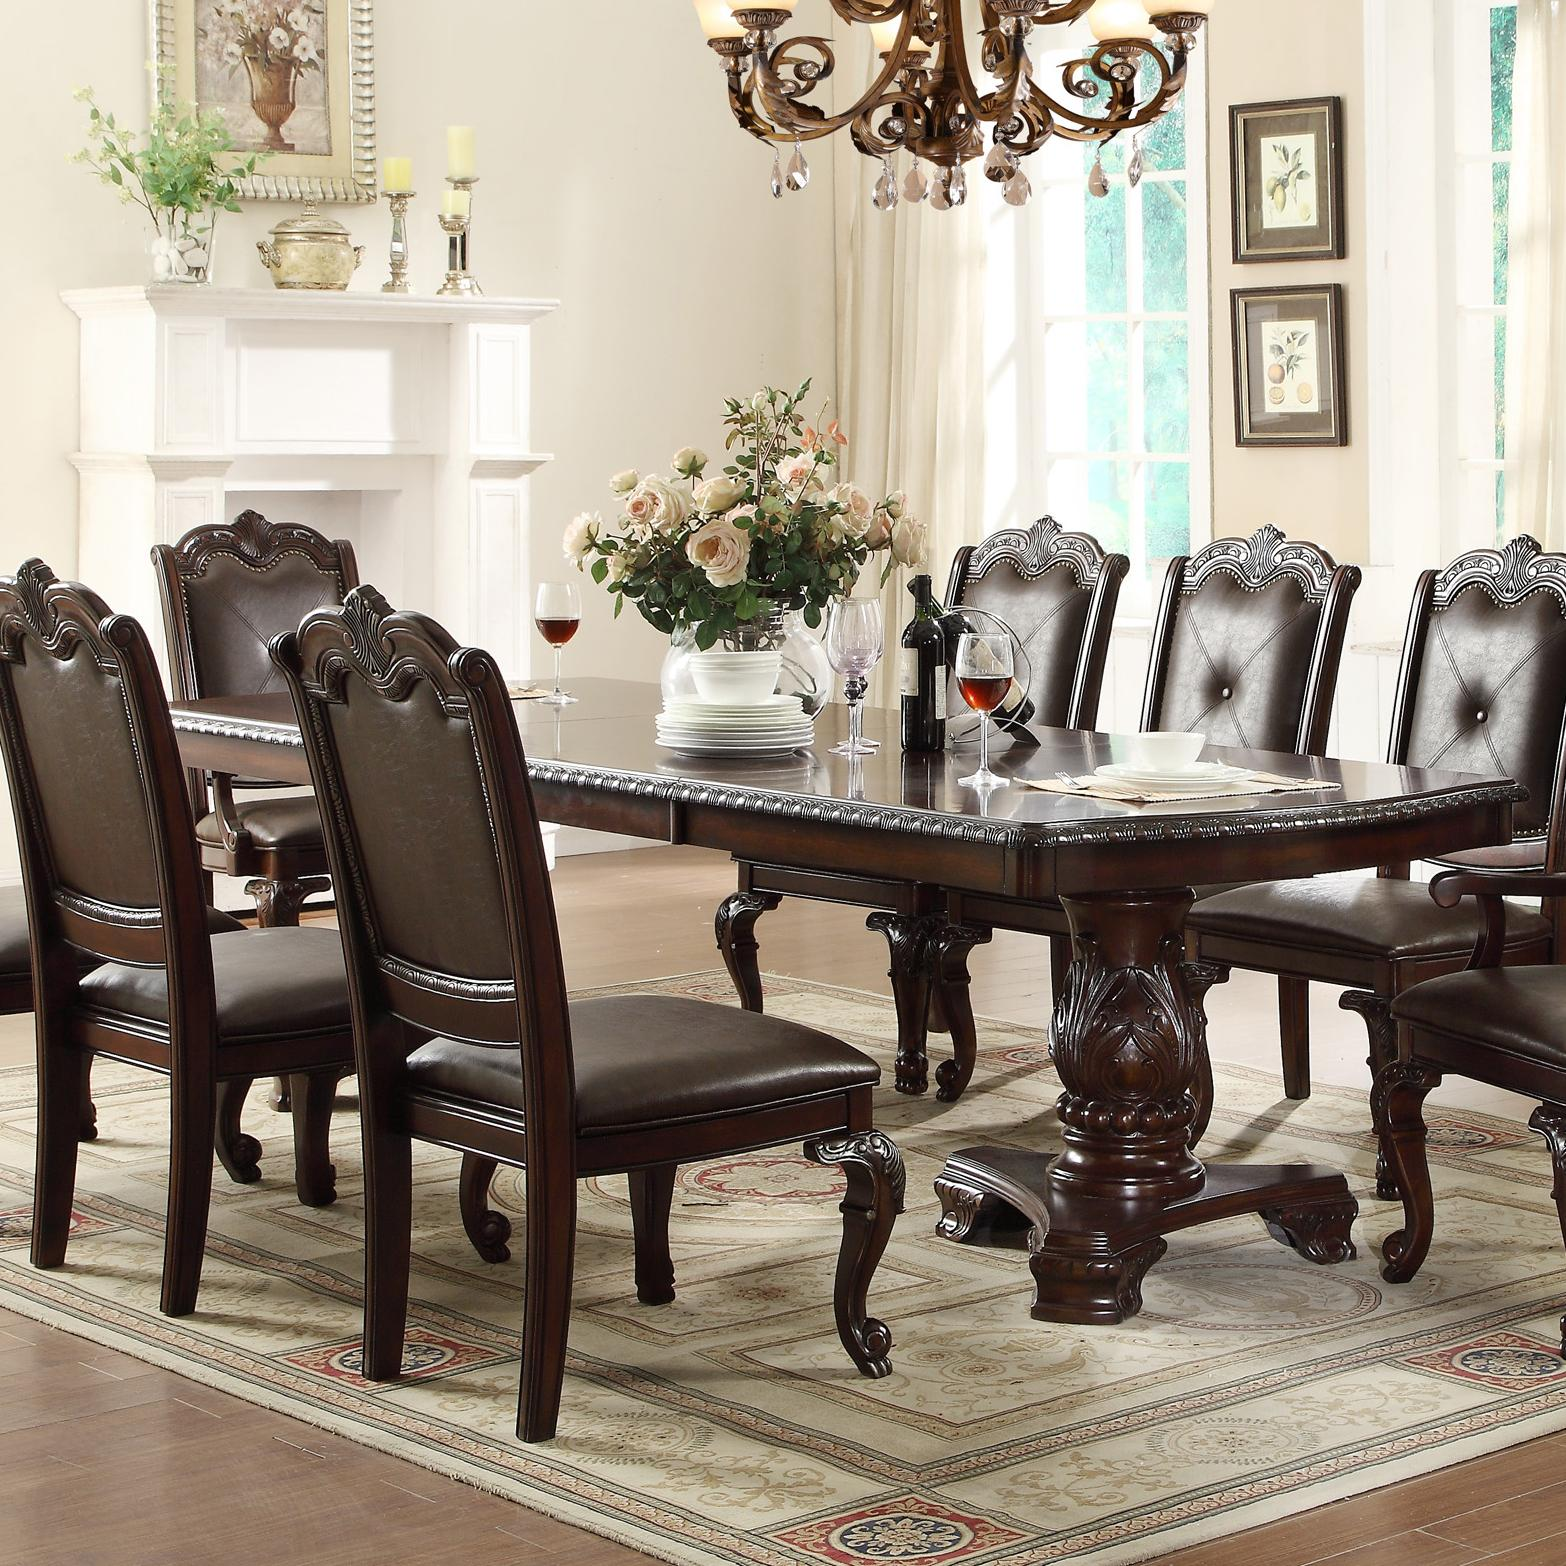 Kiera Dining Table and four side chairs by Crown Mark at Furniture Fair - North Carolina